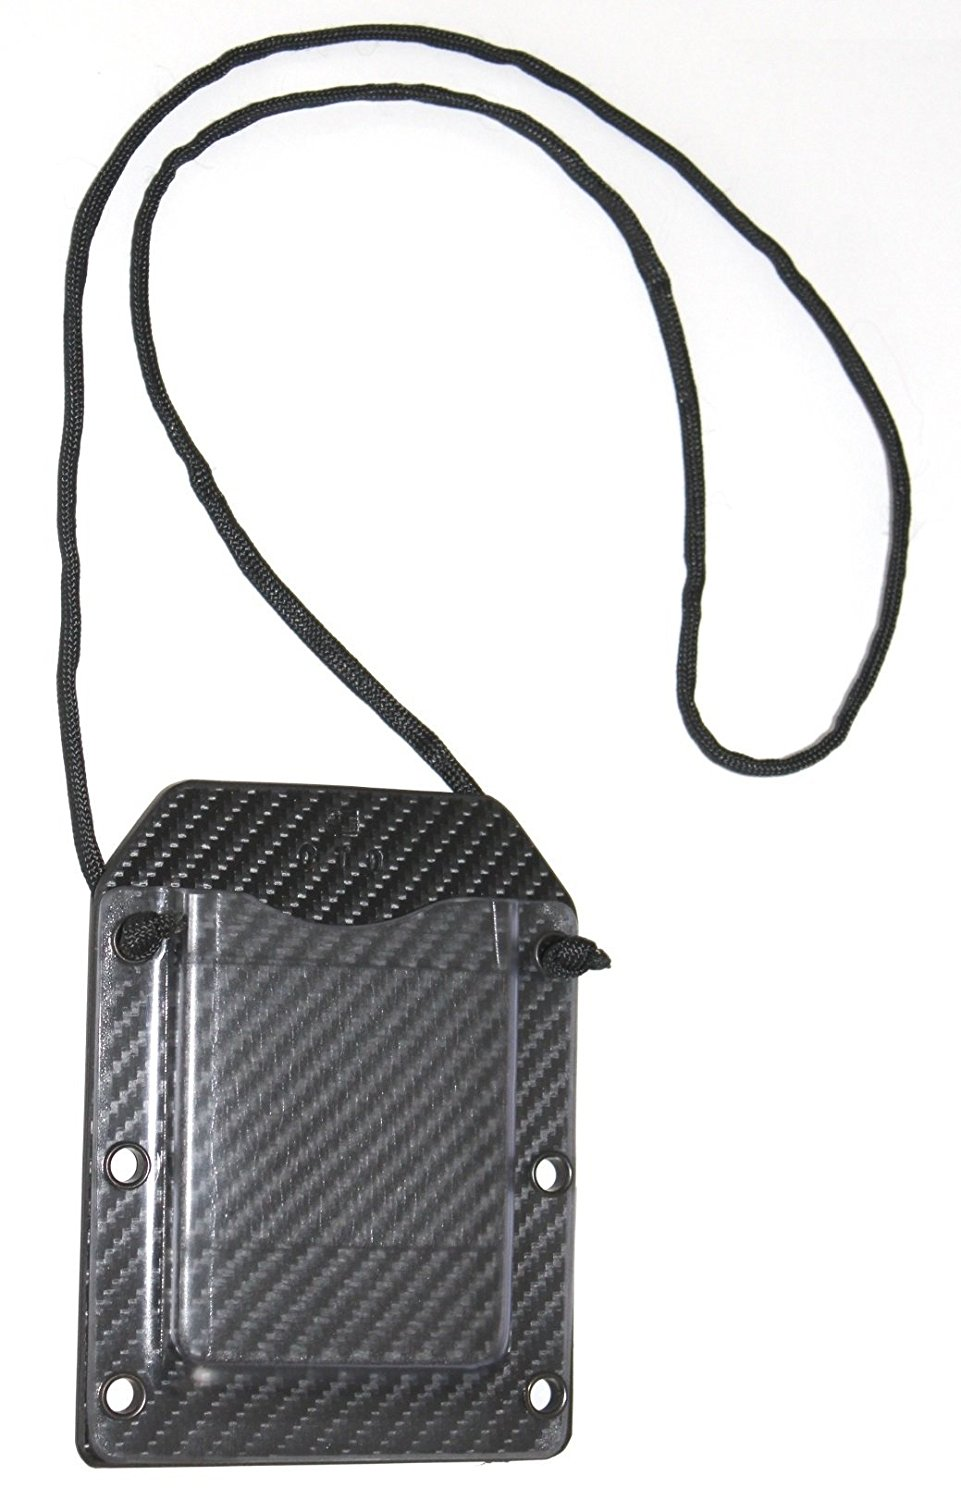 Tactical Identification and Access Card Holder / Holster (with lanyard) (Great for Military or Police)